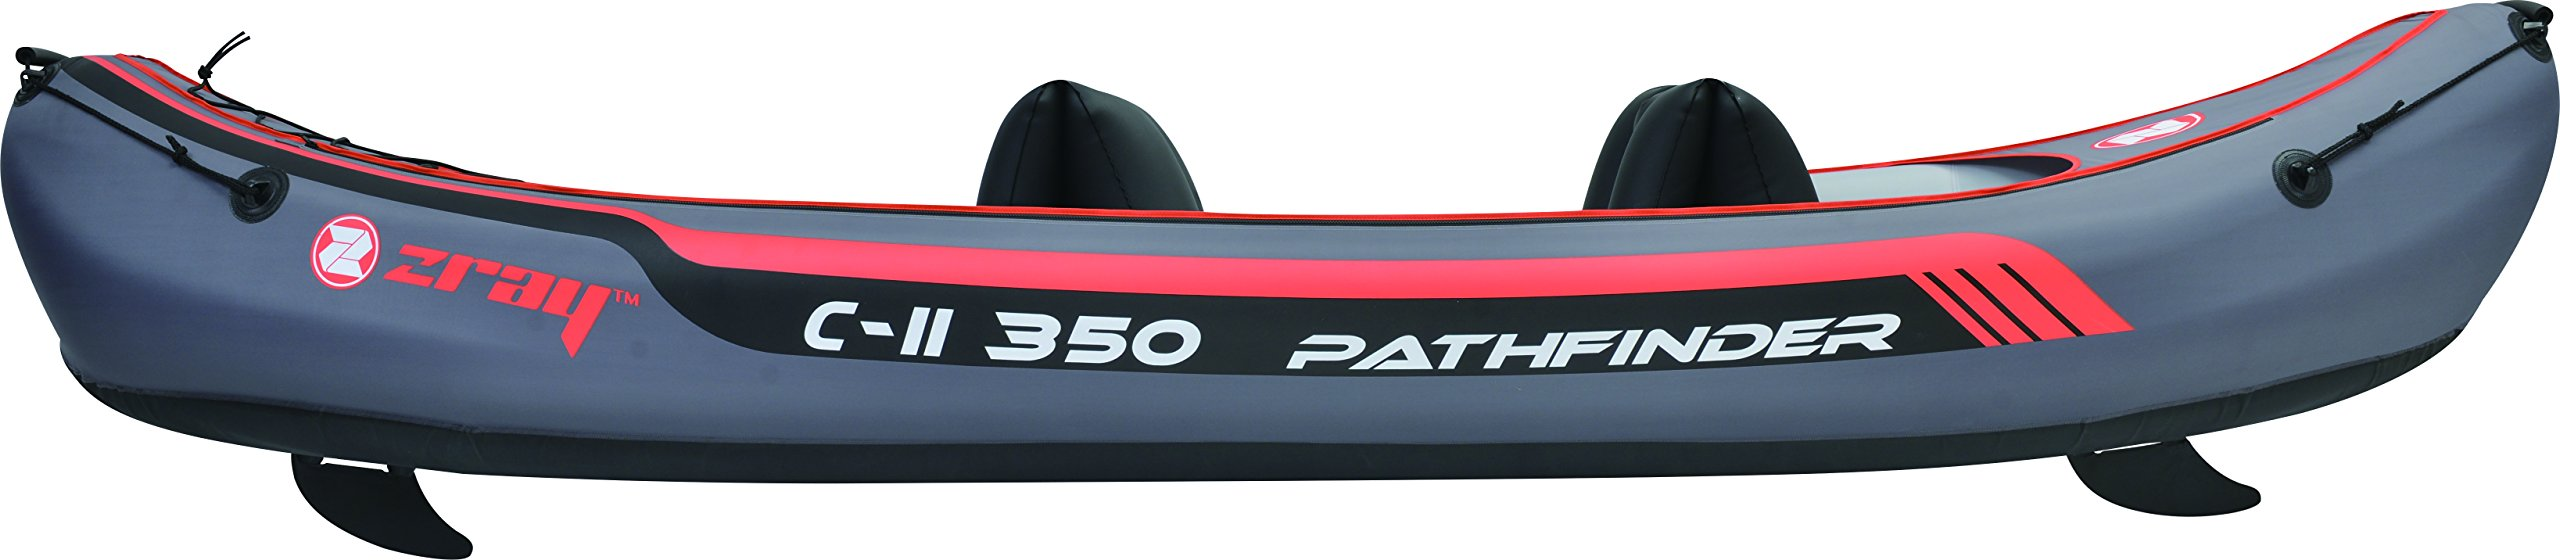 Z-Ray Pathfinder C-II 350 2-Person Inflatable Kayak - 37320